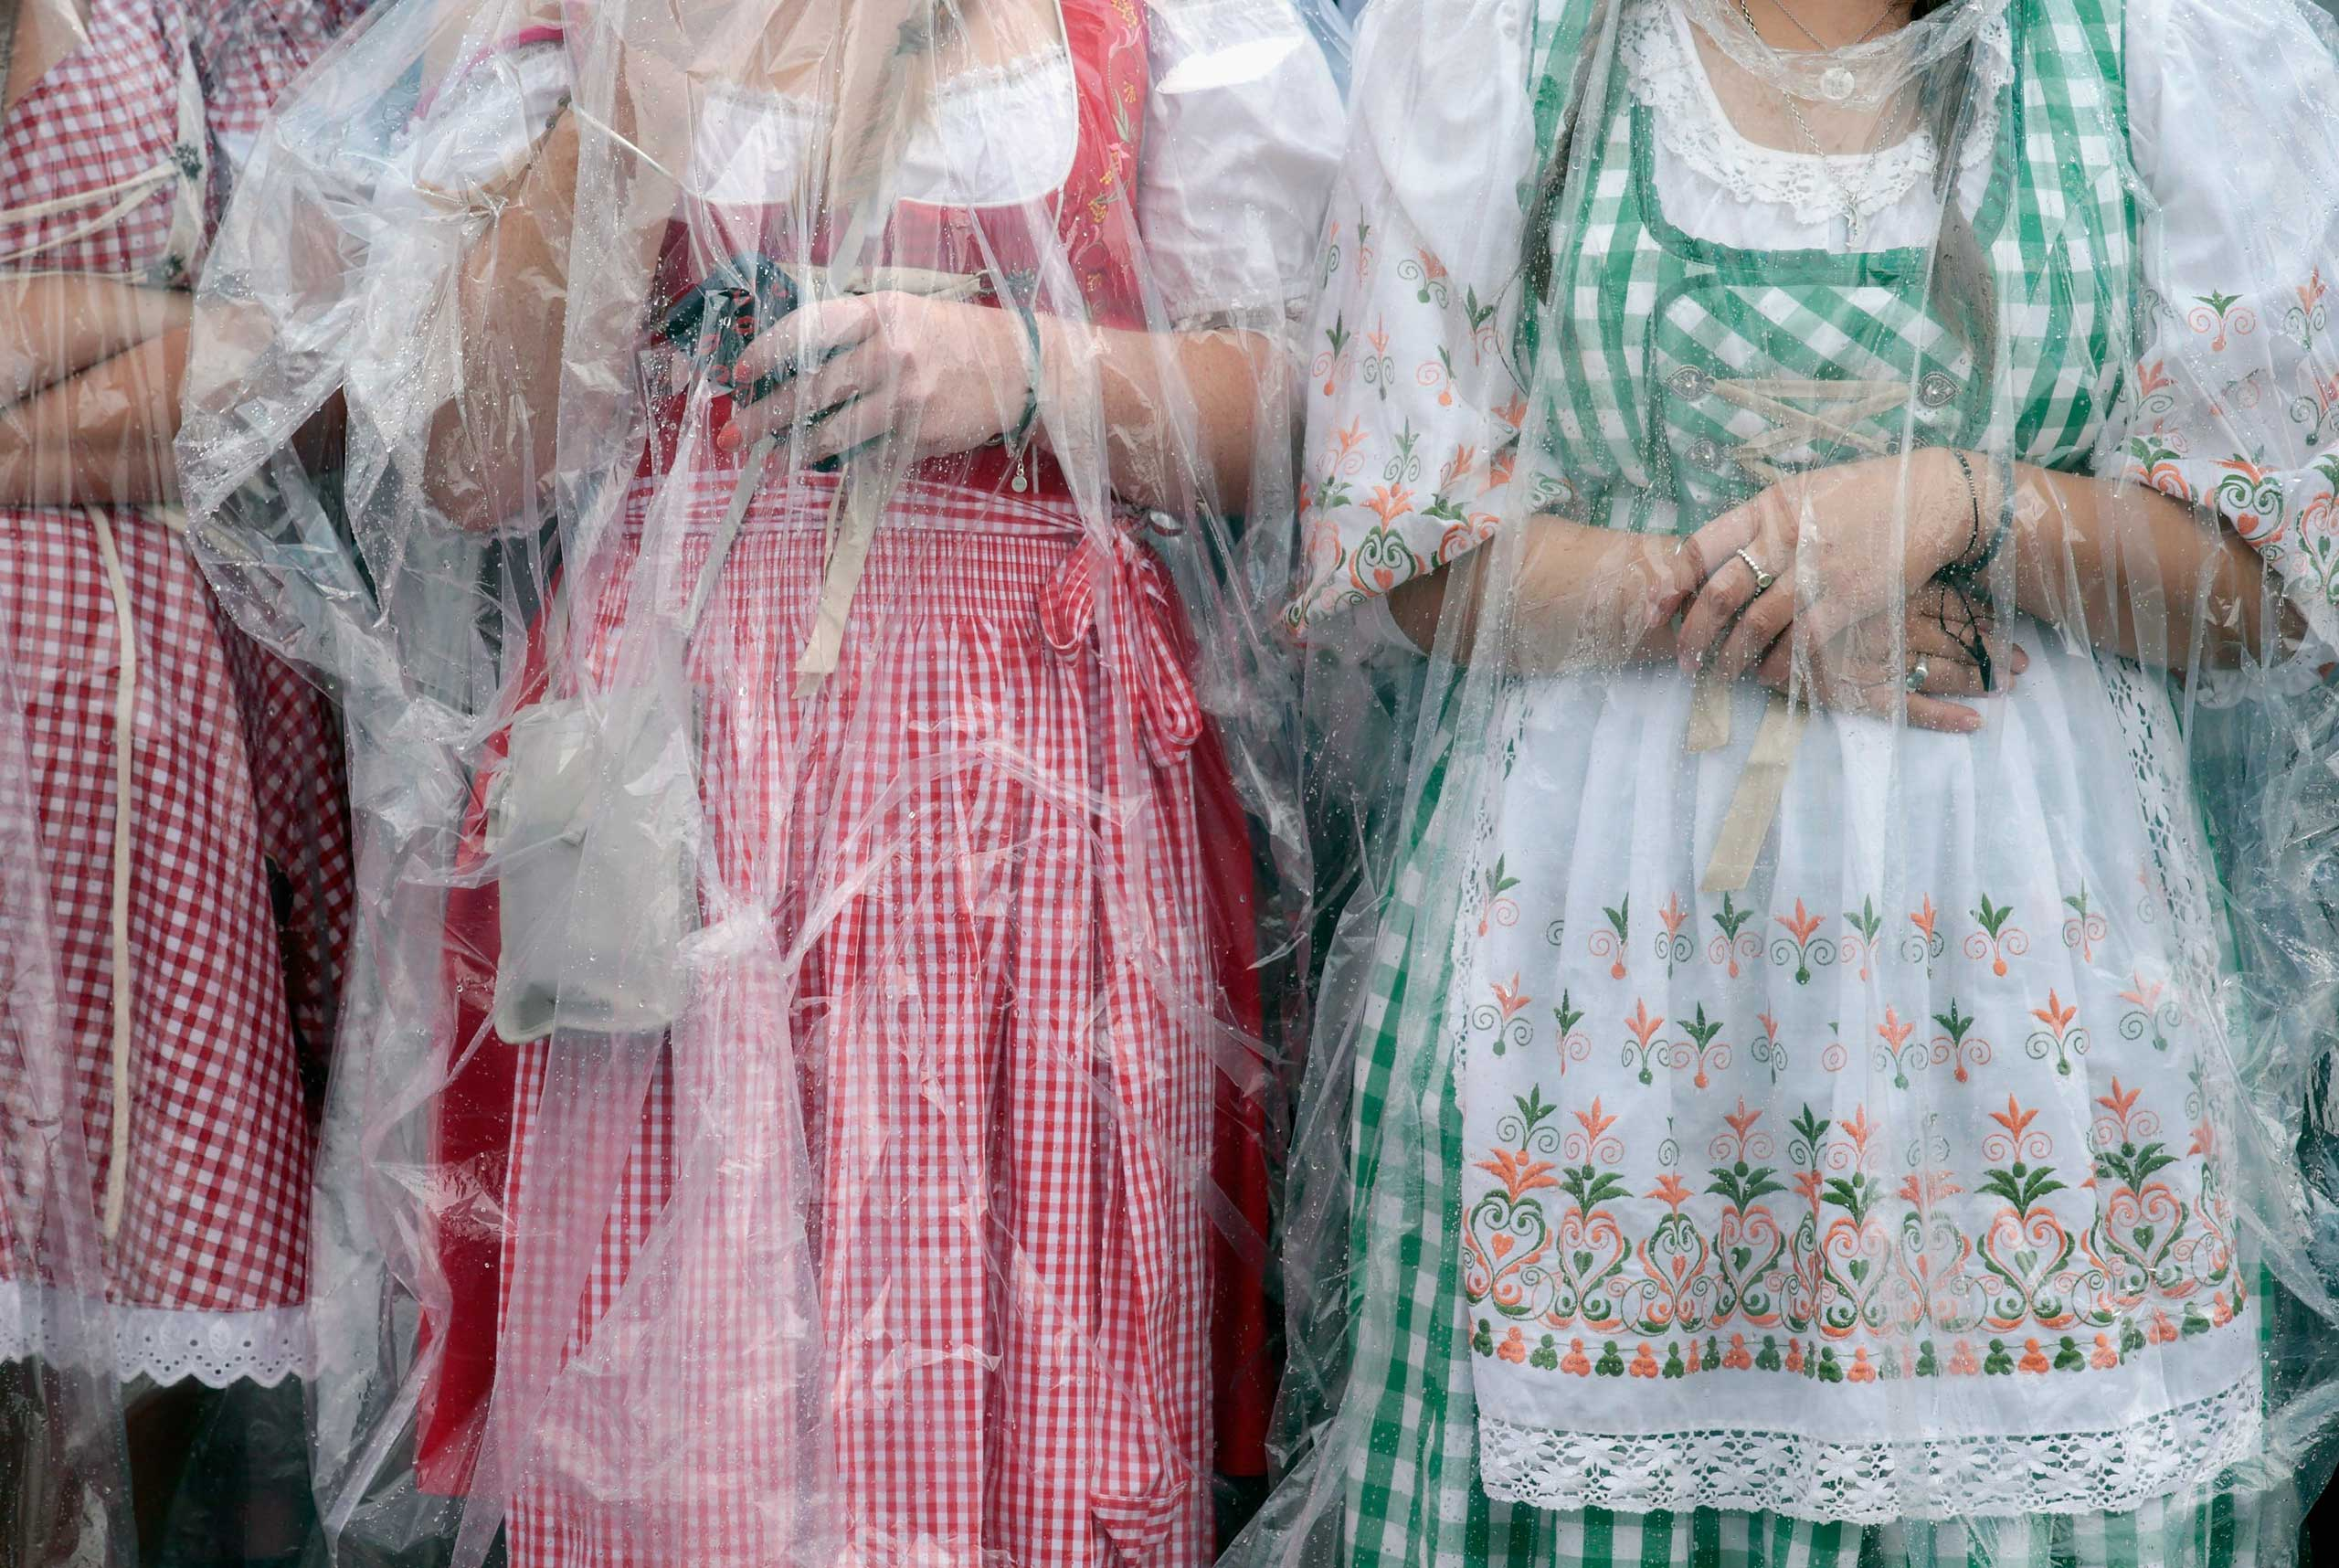 Sept 20, 2014. Revelers dressed in traditional Bavarian 'Dirndl' shelter themselves from the rain waiting for the opening parade during the first day of the 2014 Oktoberfest in Munch, Germany.